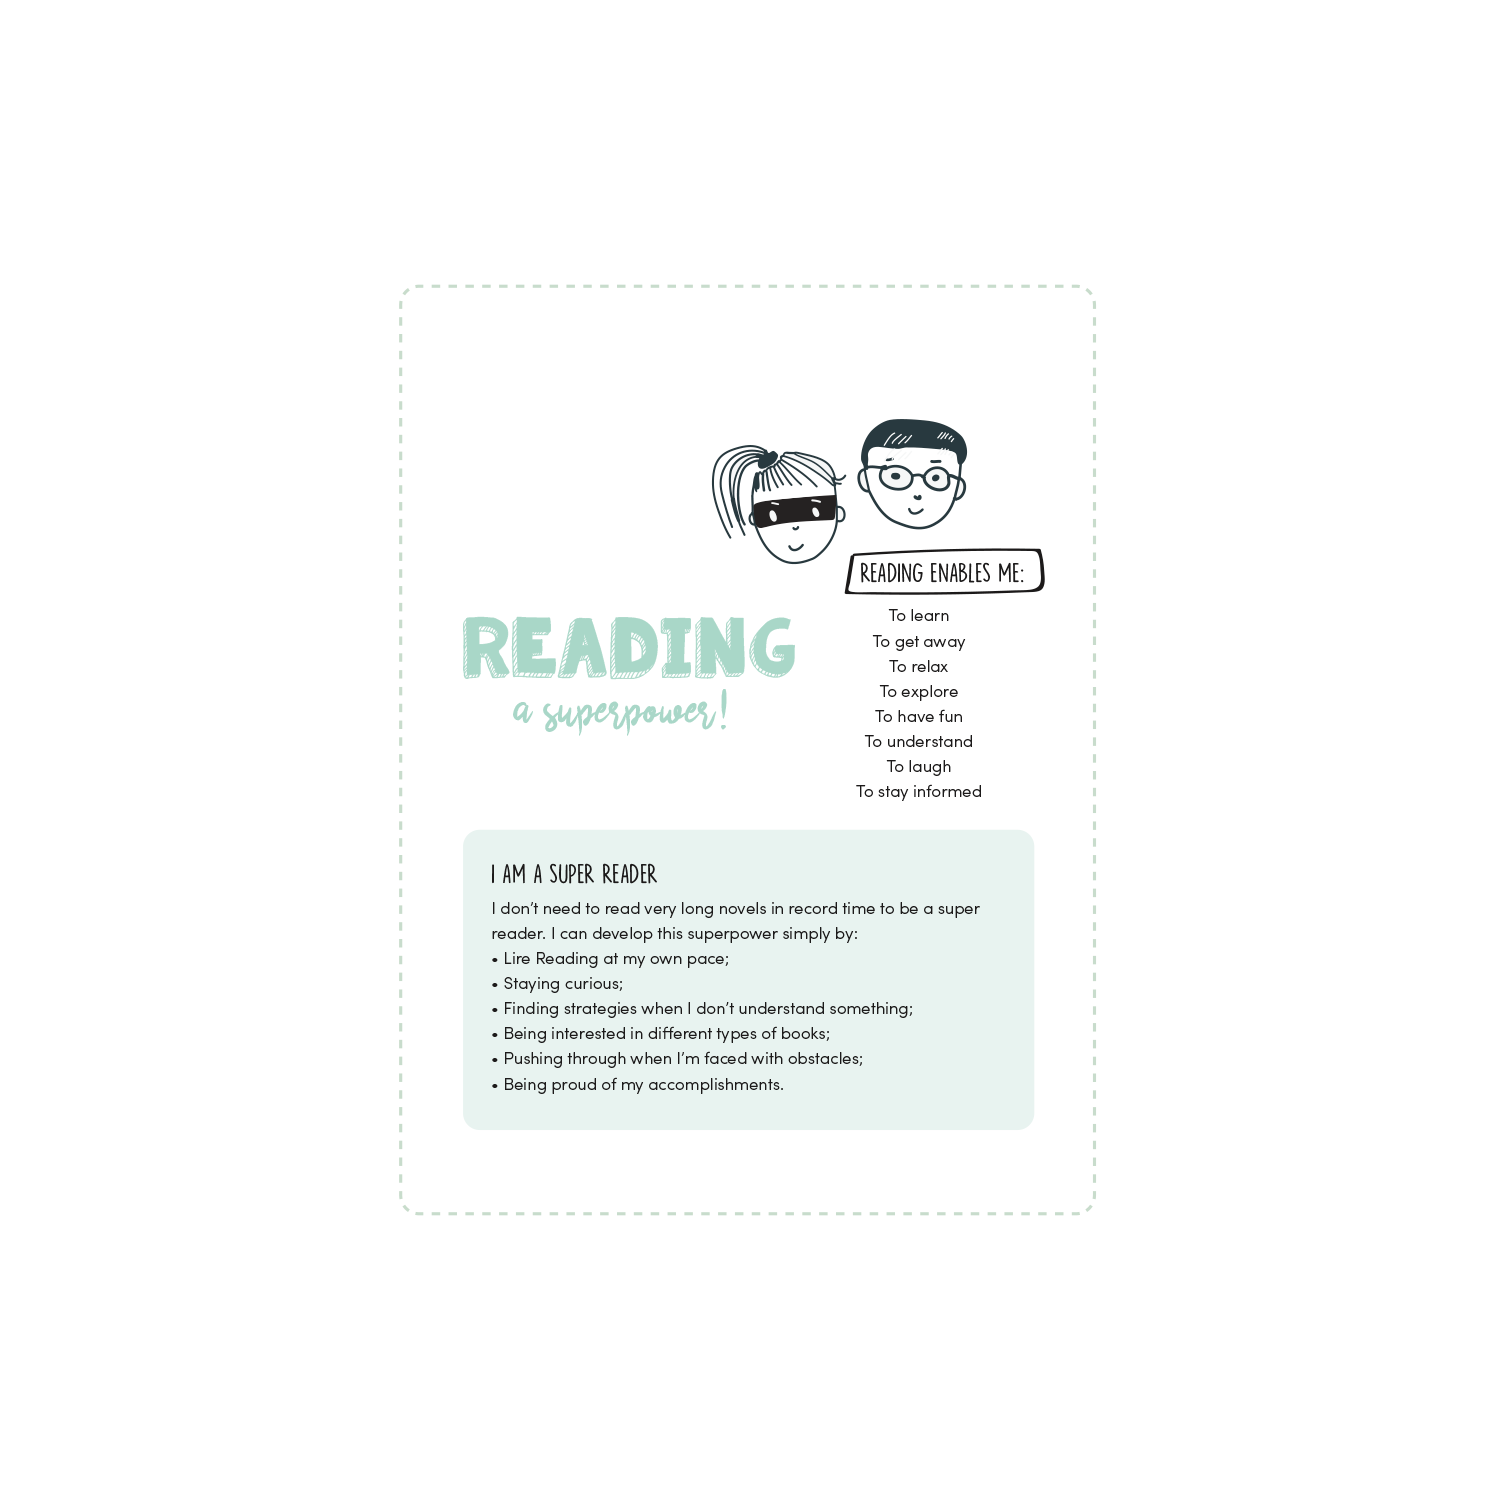 English version of the Reading a superpower document made by Les Belles Combines